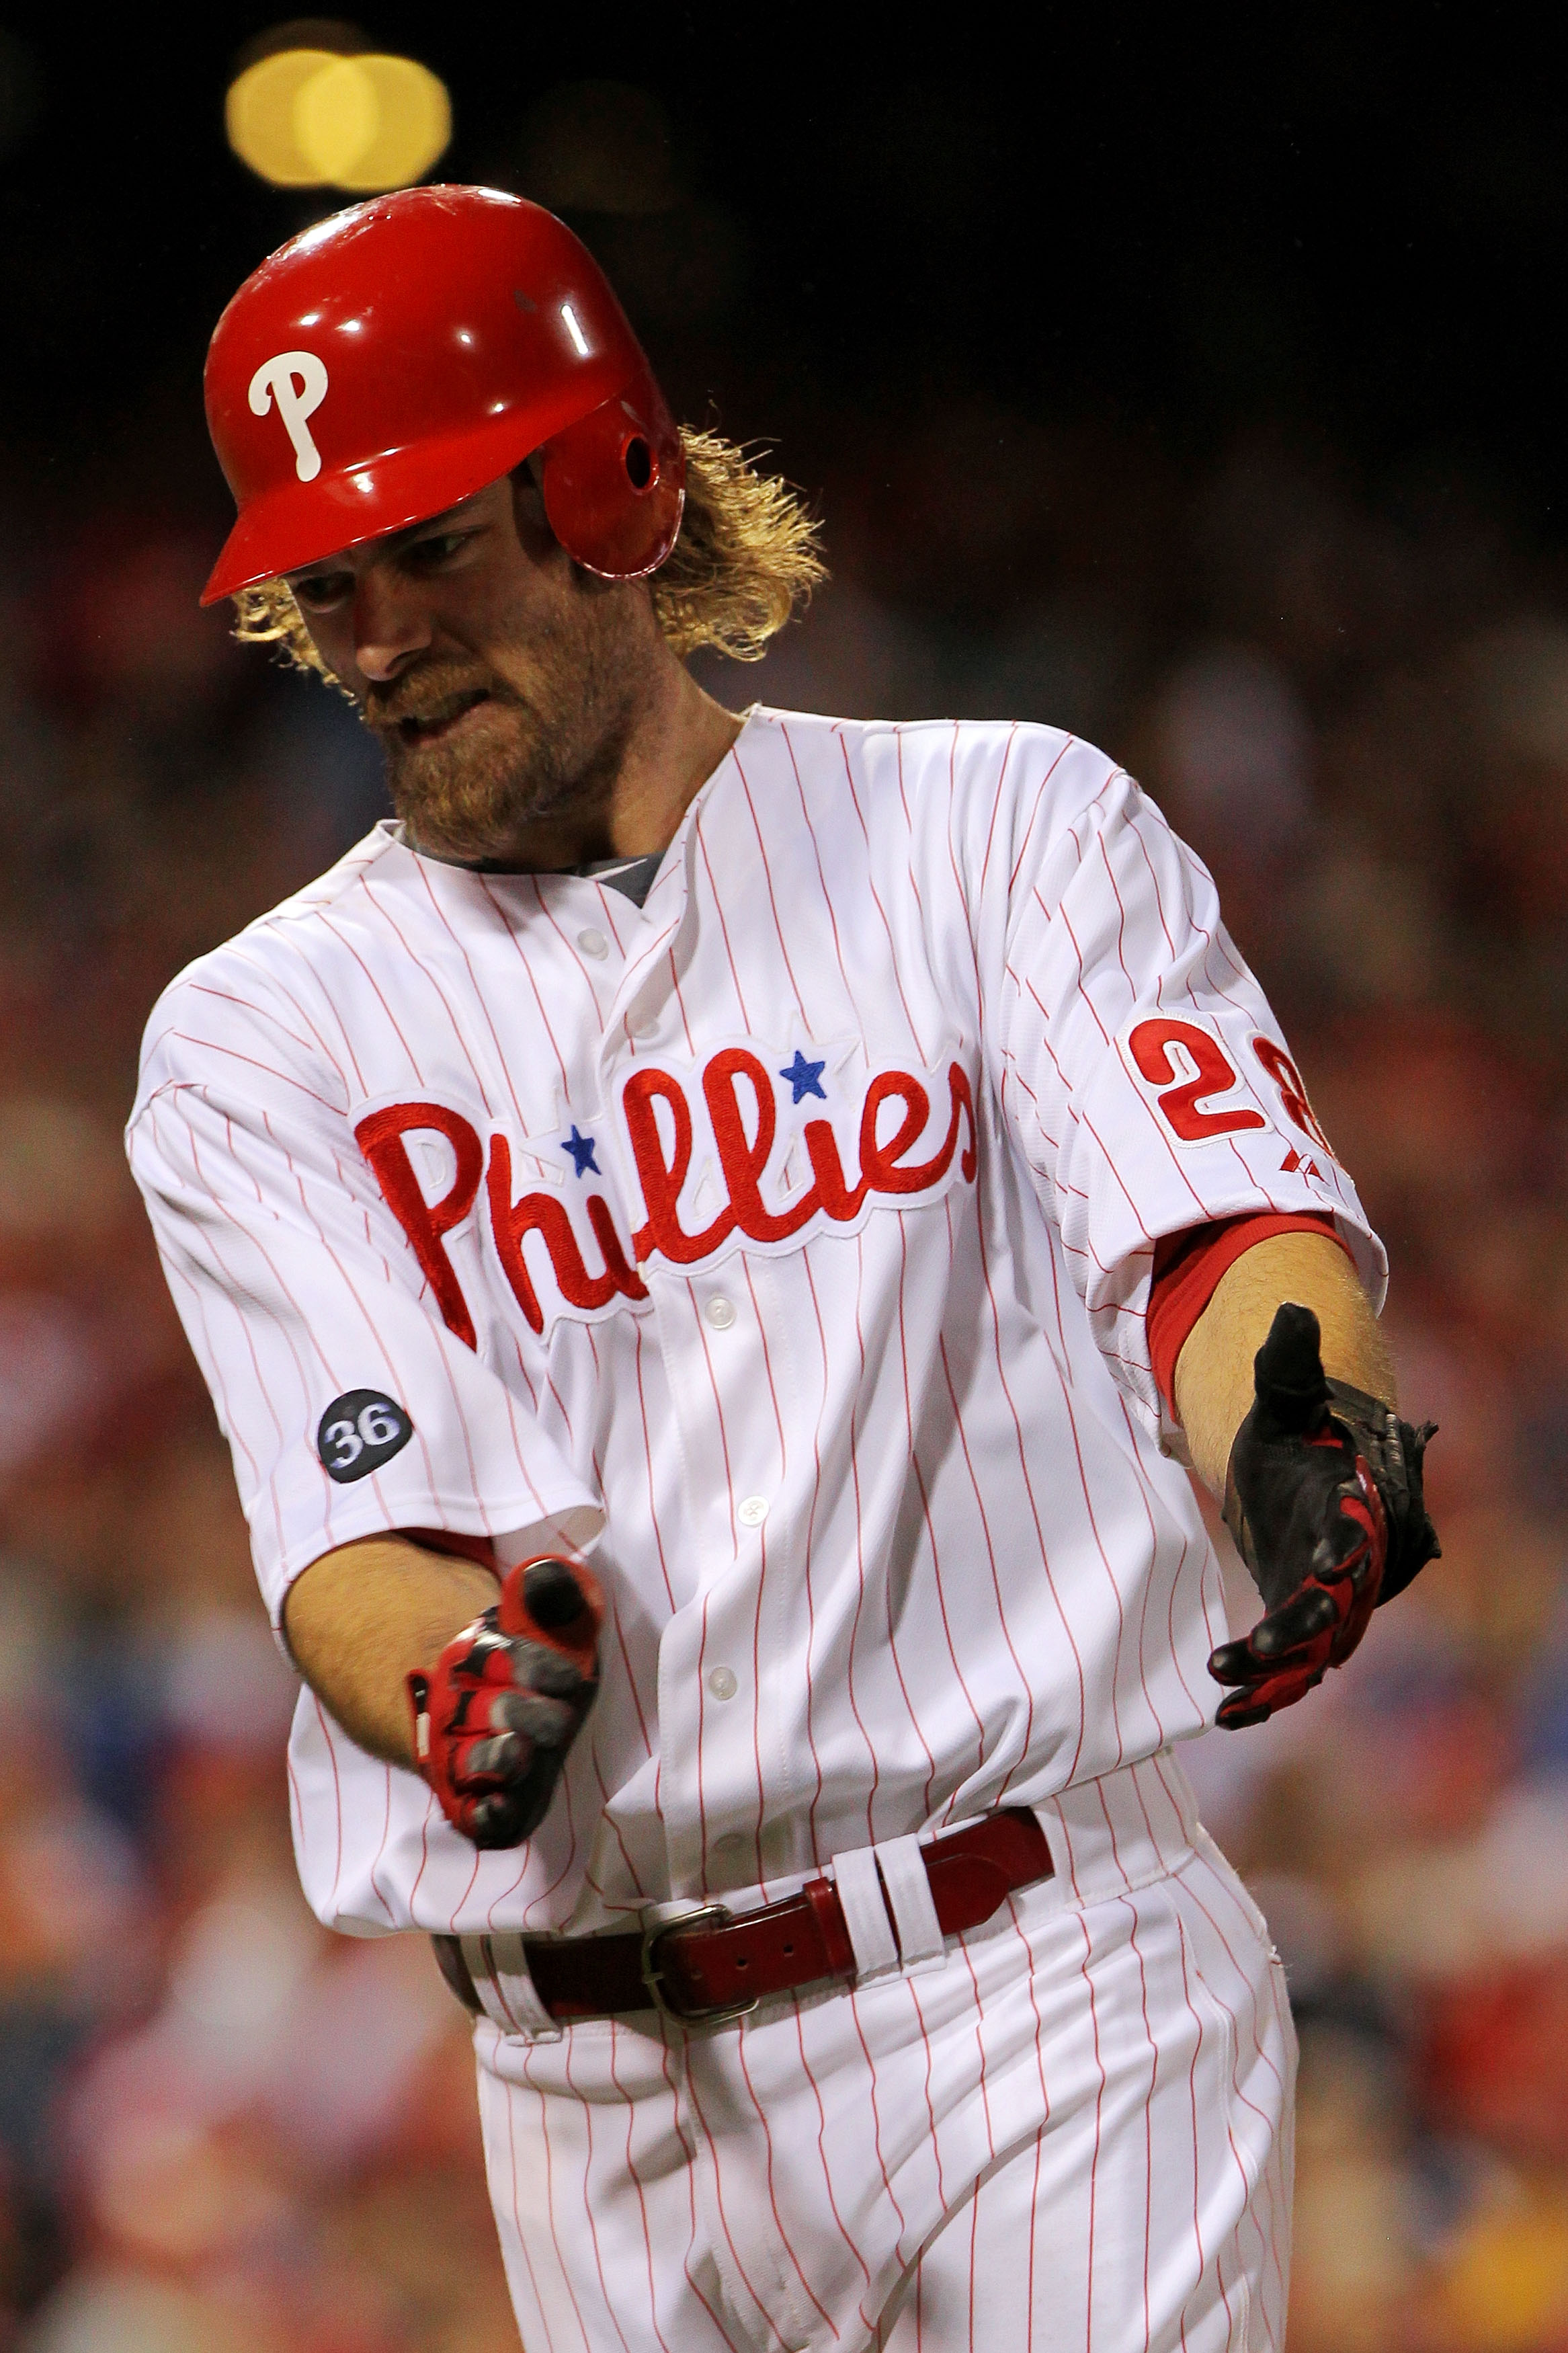 PHILADELPHIA - OCTOBER 23:  Jayson Werth #28 of the Philadelphia Phillies reacts after a sacrifice fly for an RBI against the San Francisco Giants in Game Six of the NLCS during the 2010 MLB Playoffs at Citizens Bank Park on October 23, 2010 in Philadelph